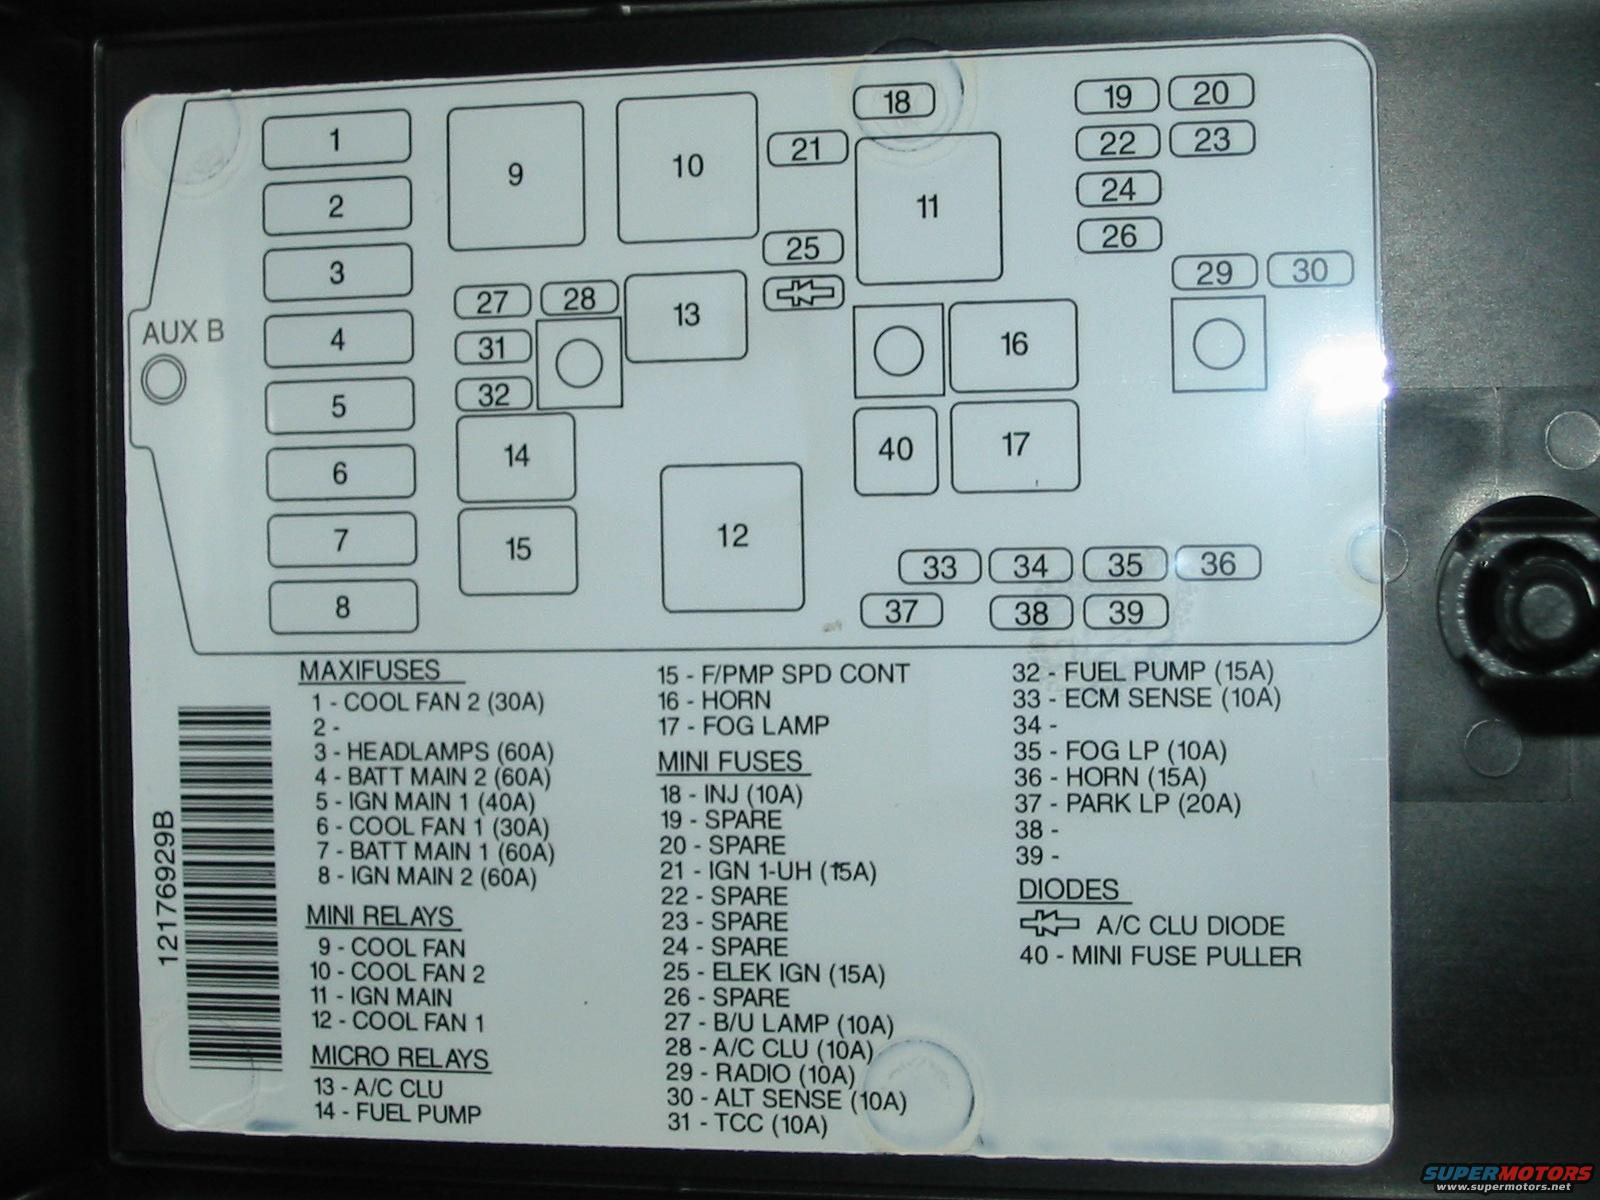 hight resolution of 2006 peterbilt 379 fuse panel diagram wiring diagram sheet peterbilt 386 fuse panel diagram peterbilt fuse panel diagram